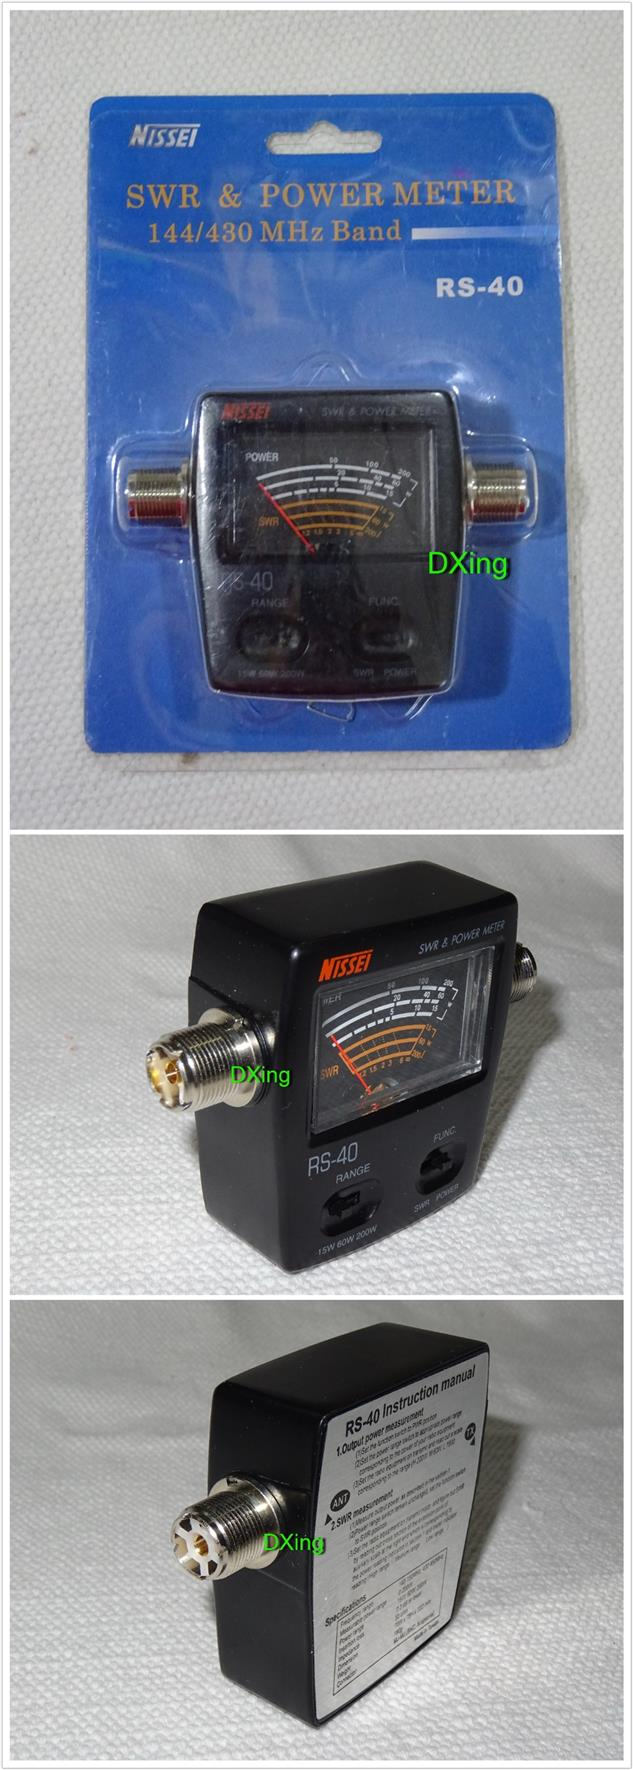 NISSEI RS-40 RS40 Analog SWR/Watt Meter  for # yaesu icom kenwood  #